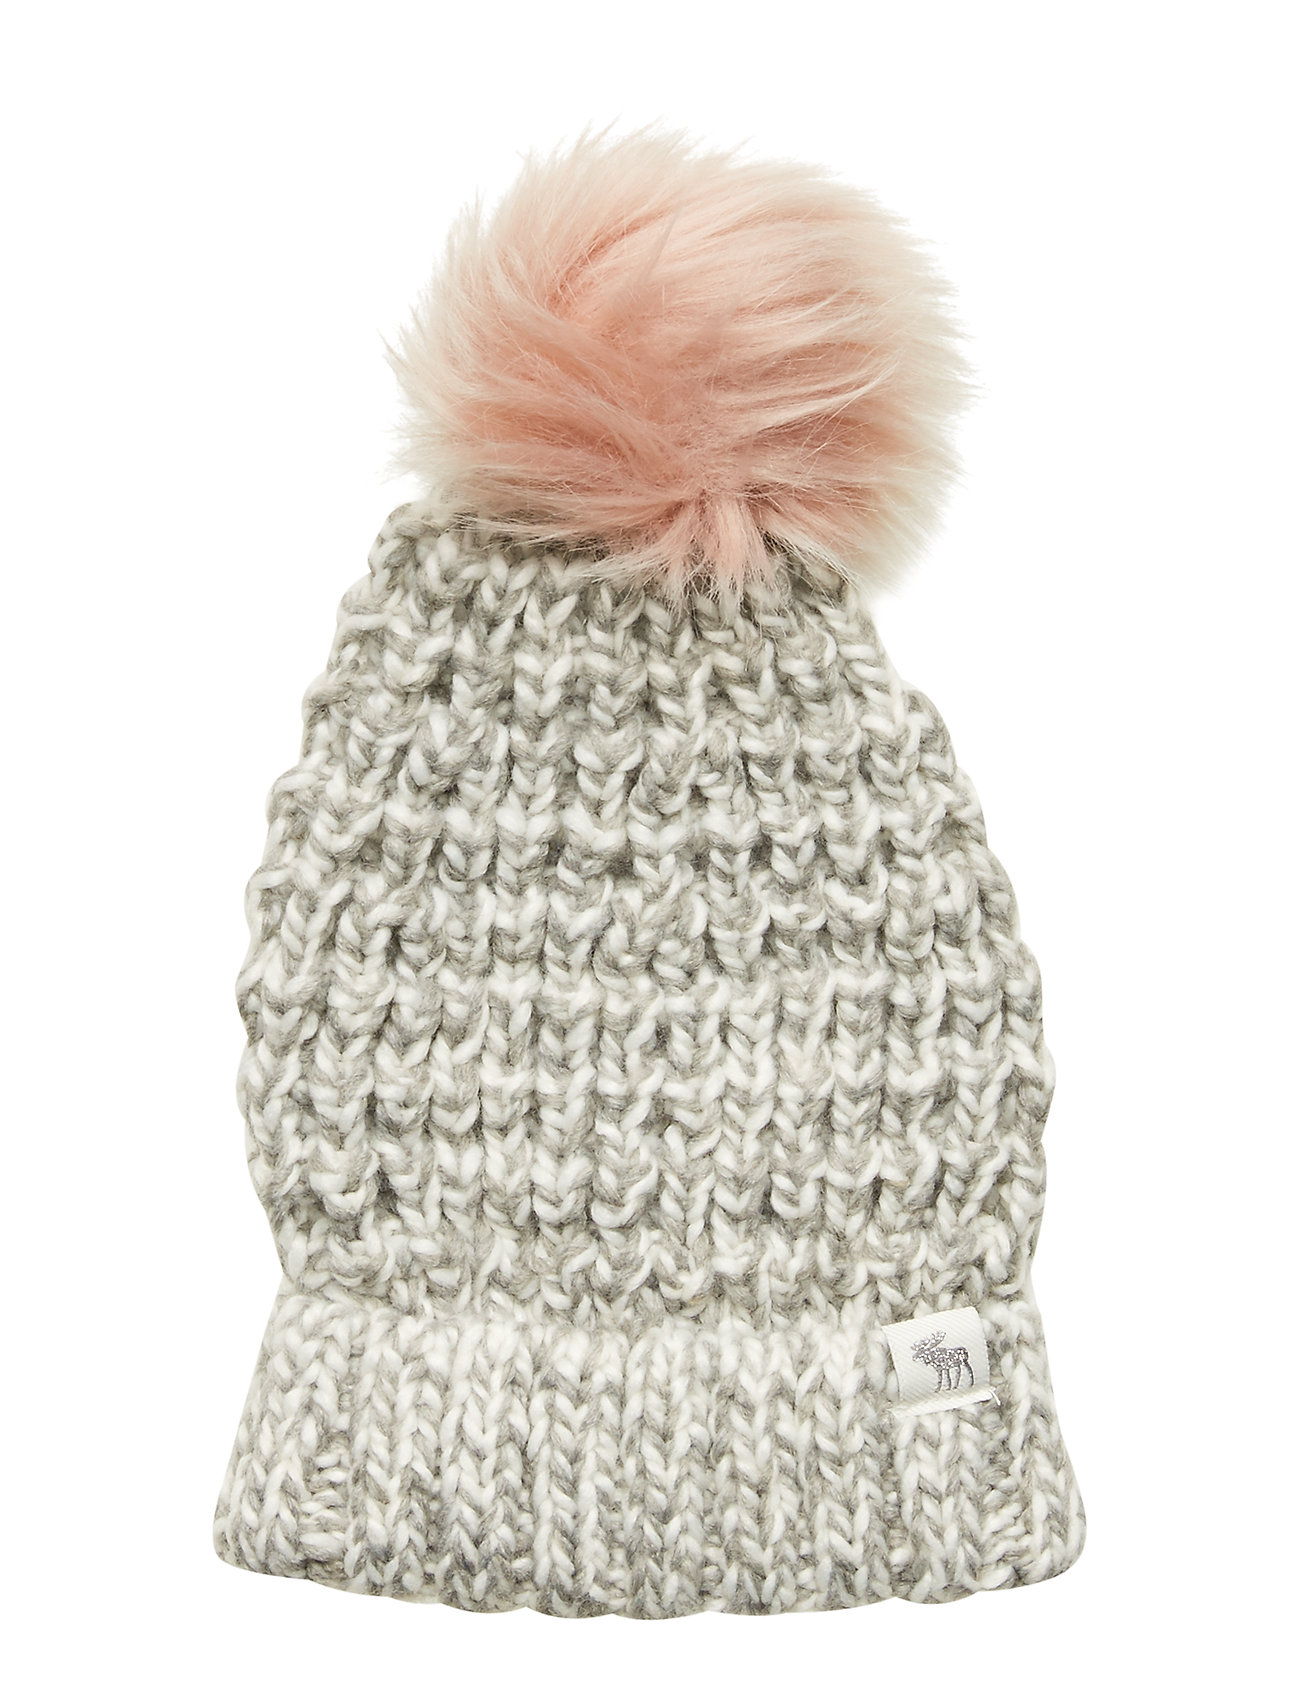 Abercrombie & Fitch Beanie - LIGHT SOLID GREY